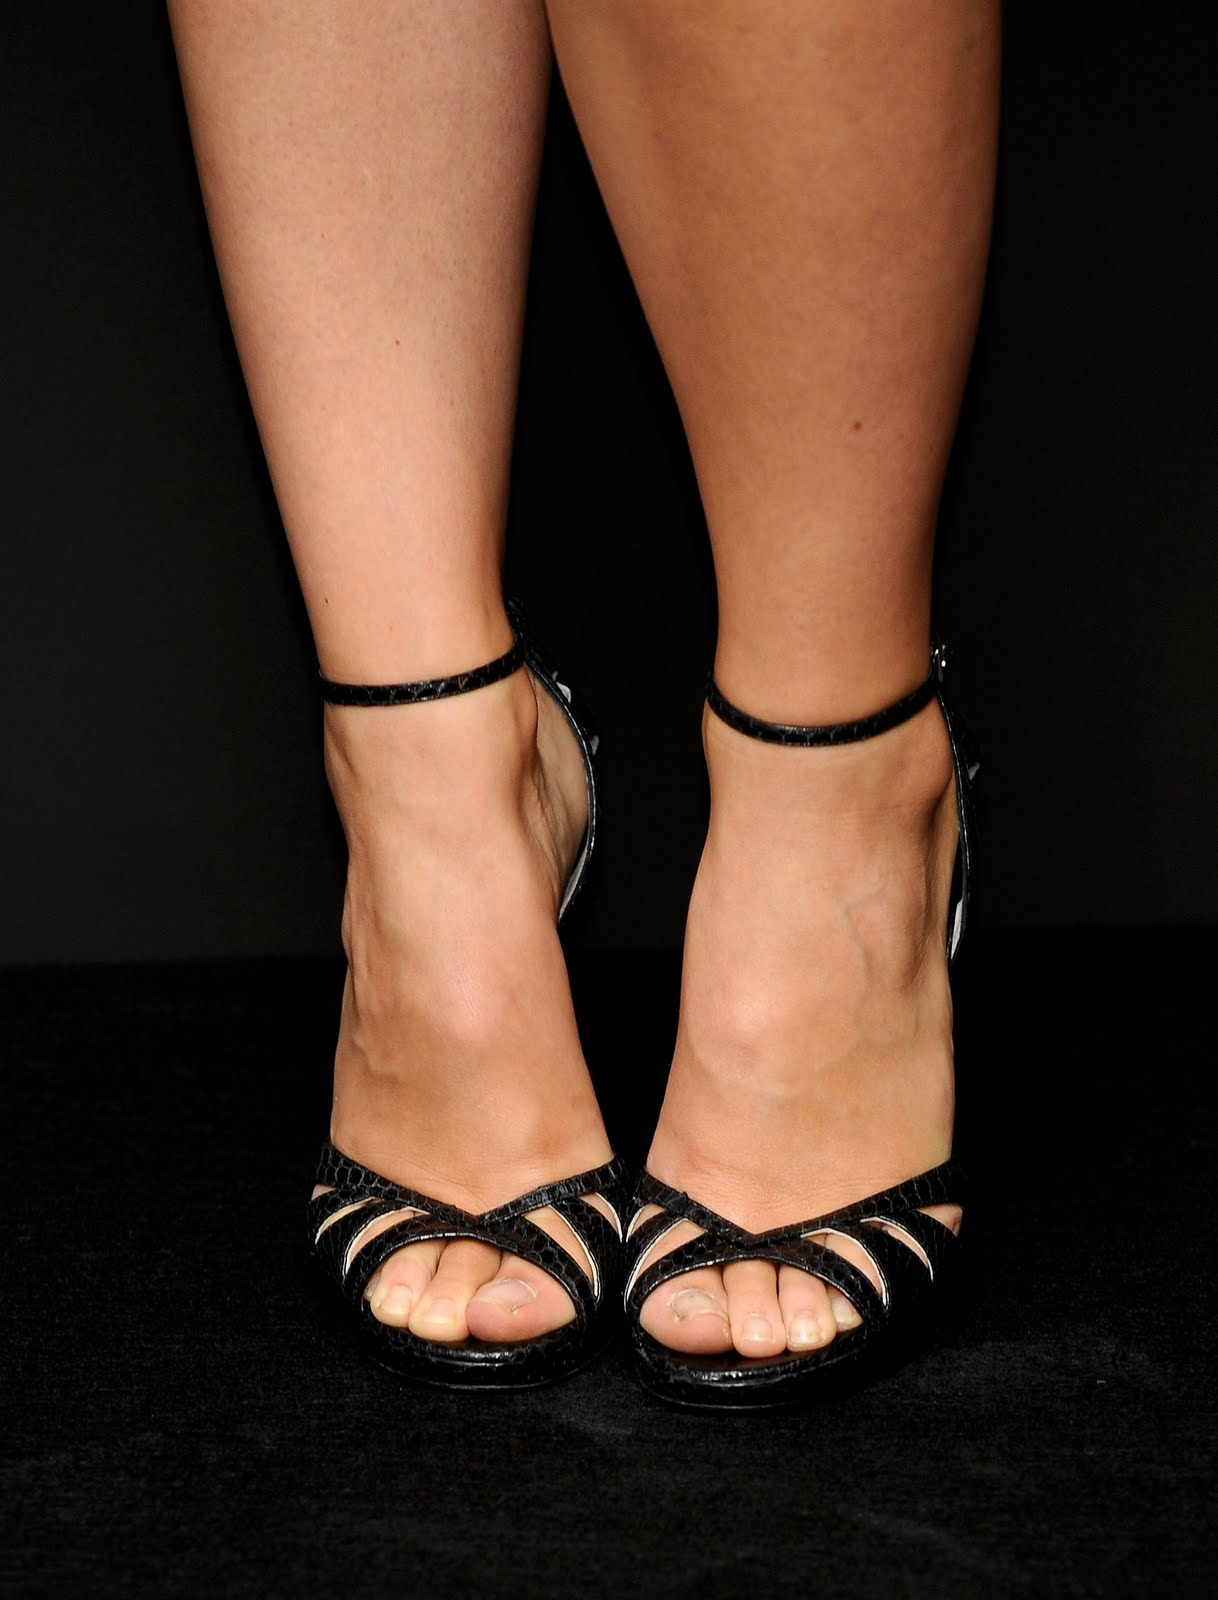 Total Celebrity Olivia Wilde Feet-7068